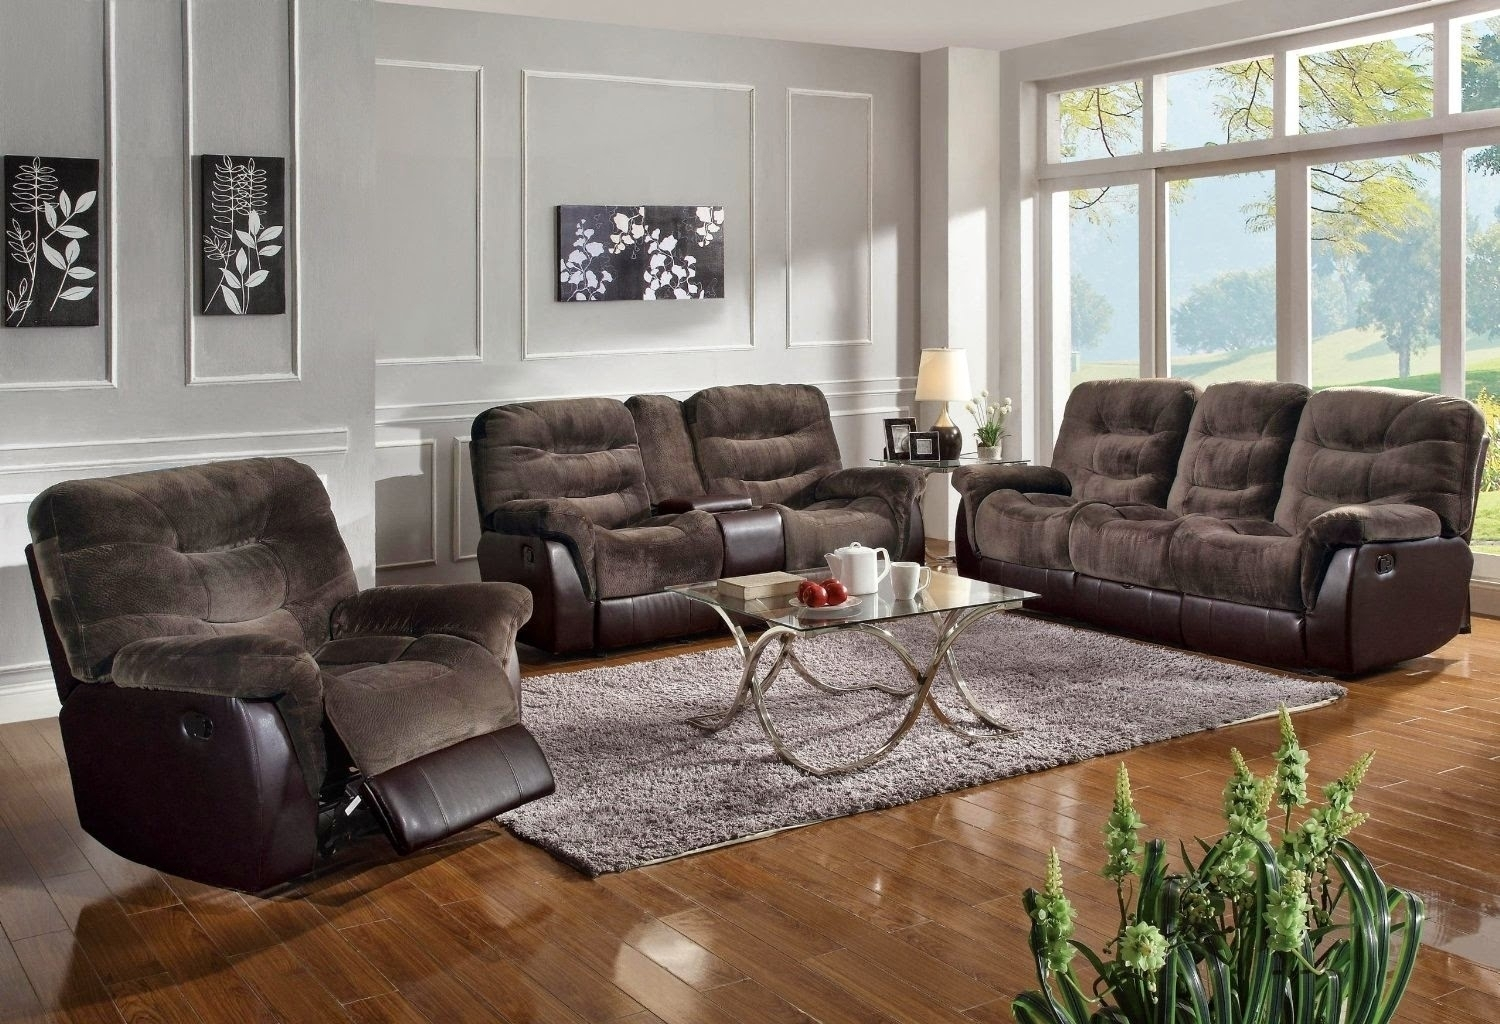 Strong Reclining Sectional Sofas For Small Spaces Furniture | Www With Sectional Sofas With Recliners For Small Spaces (Image 9 of 10)